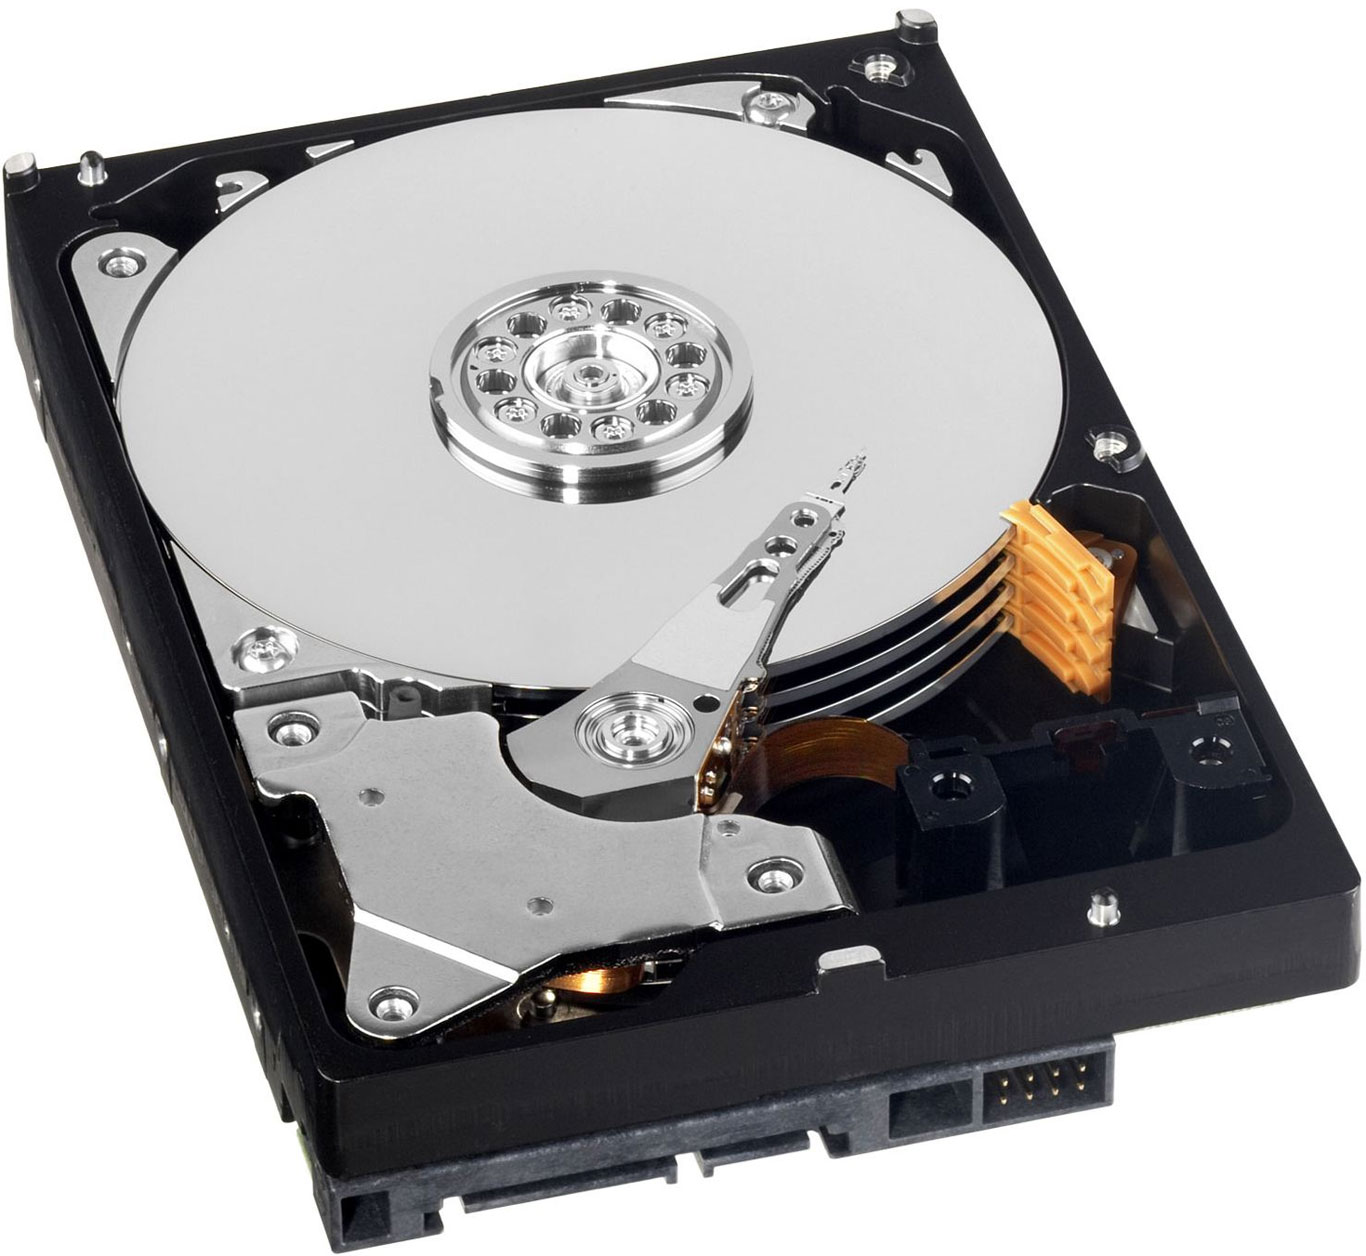 PC Sata 500GB HDD